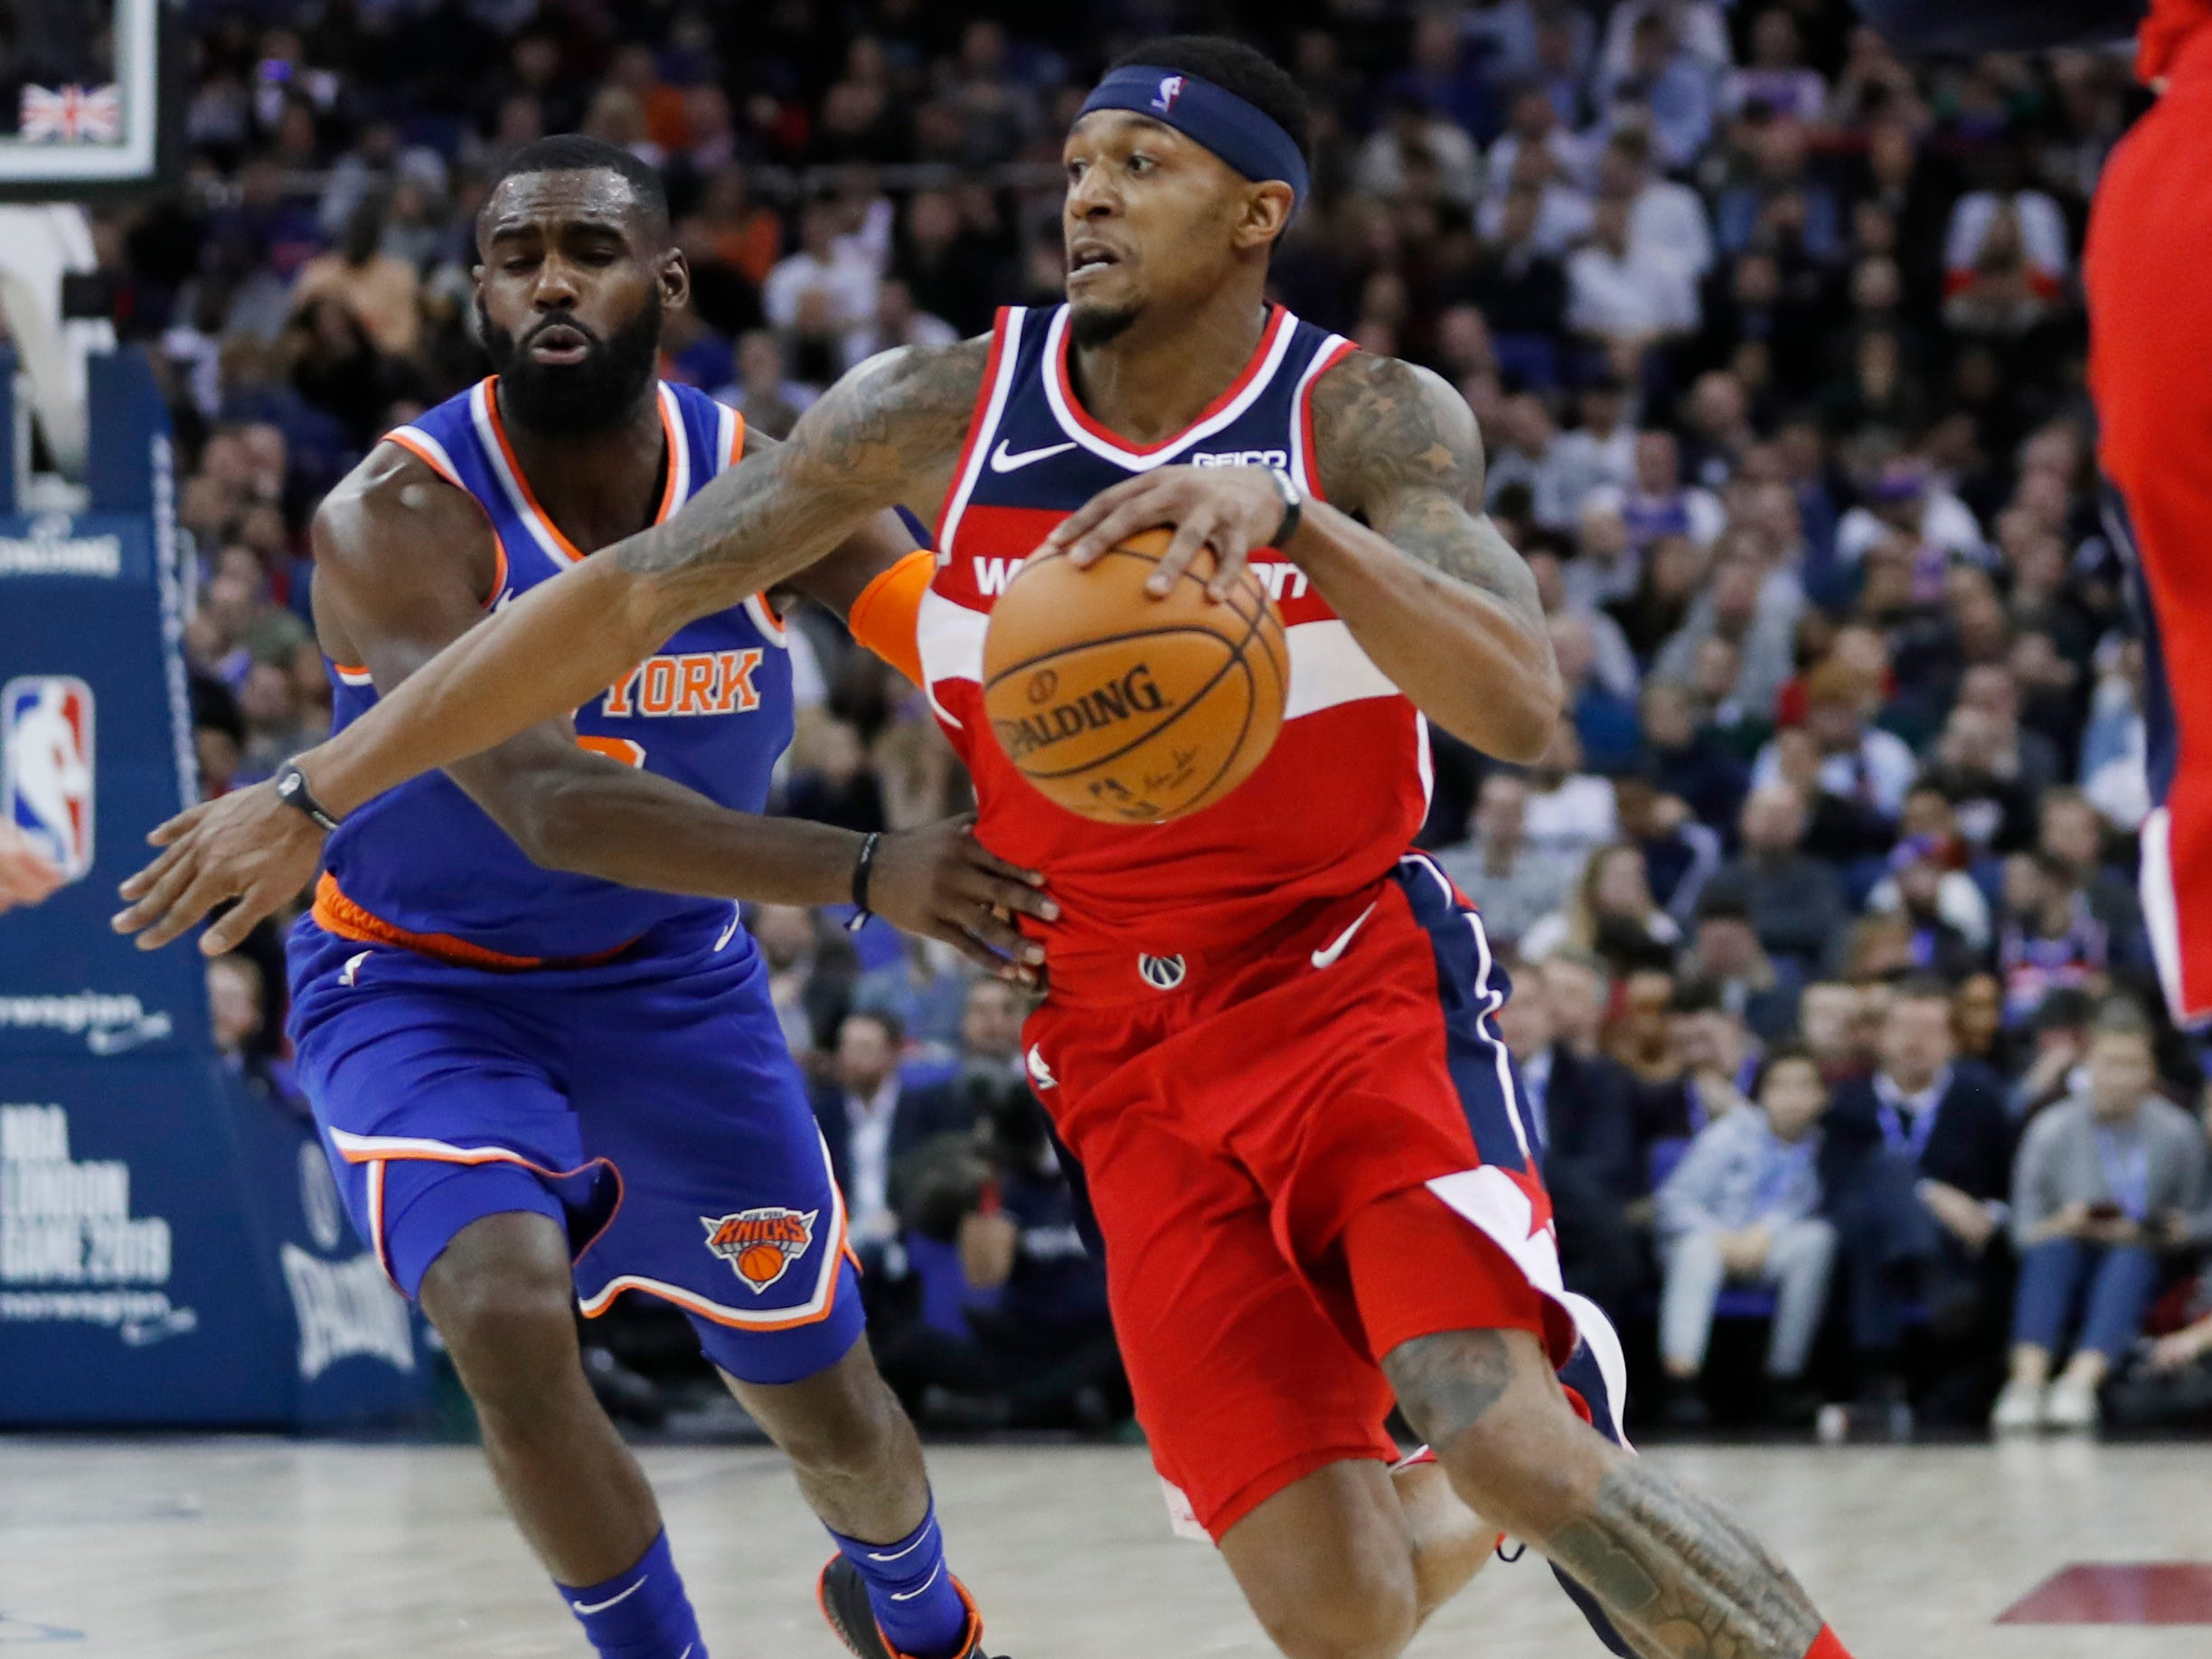 Washington Wizards guard Bradley Beal (3), right, drives to the basket as New York Knicks guard Tim Hardaway Jr. (3)defends, during an NBA basketball game between New York Knicks and Washington Wizards at the O2 Arena, in London, Thursday, Jan.17, 2019.